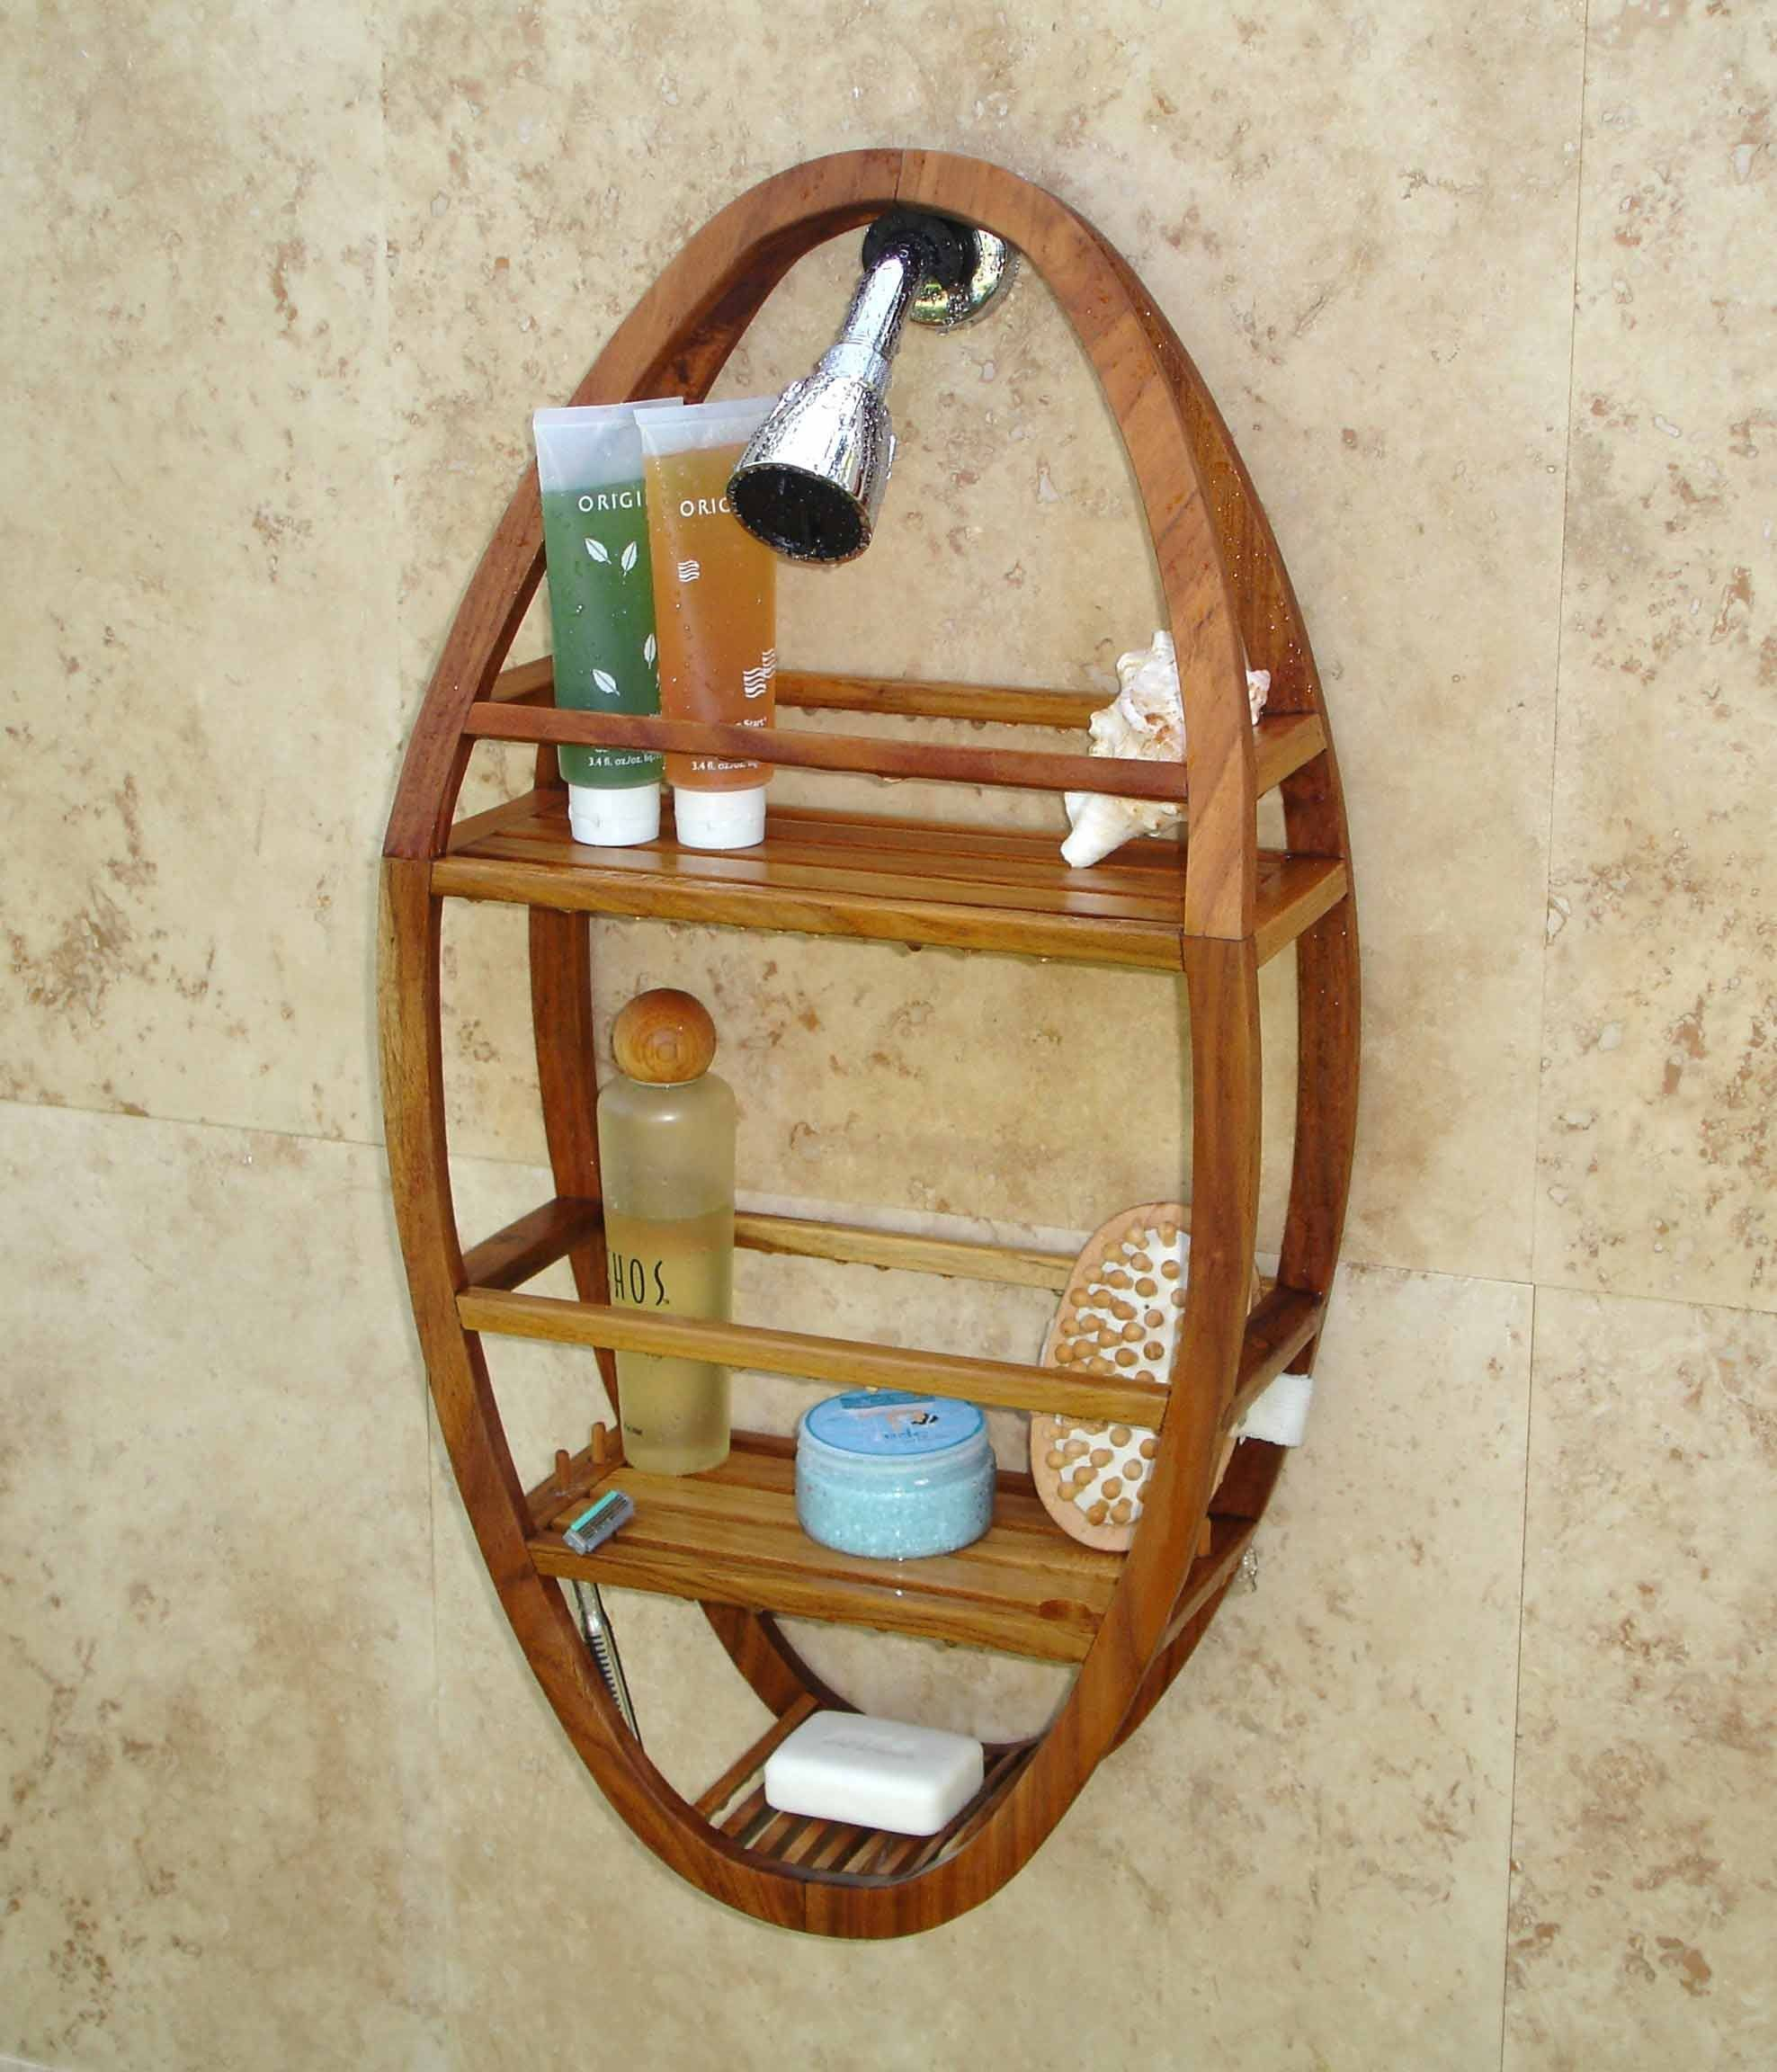 Amazon Com Spa Teak Oval Shower Organizer Shower Caddies Pool Shower Shower Organization Teak Shower Teak Bathroom